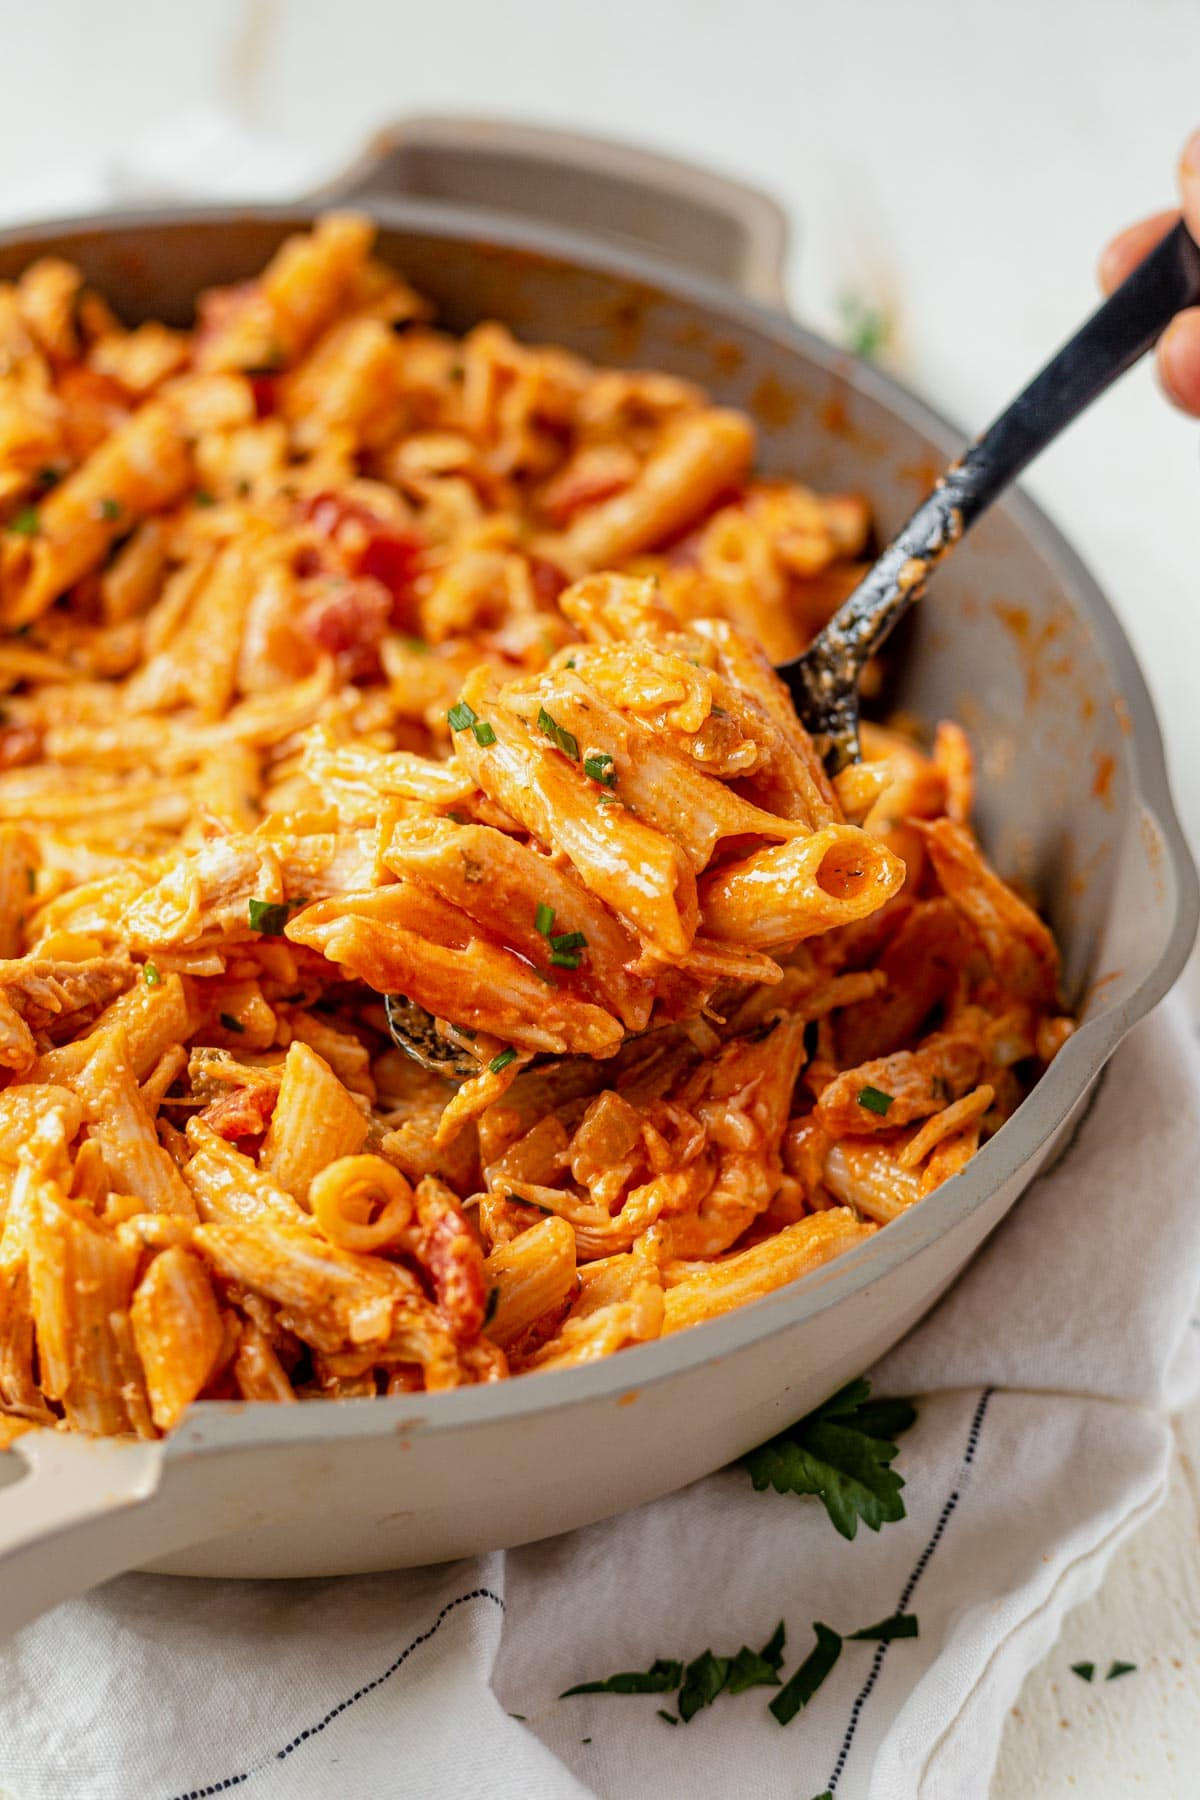 a black spoon scooping out buffalo chicken pasta from a cream colored skillet